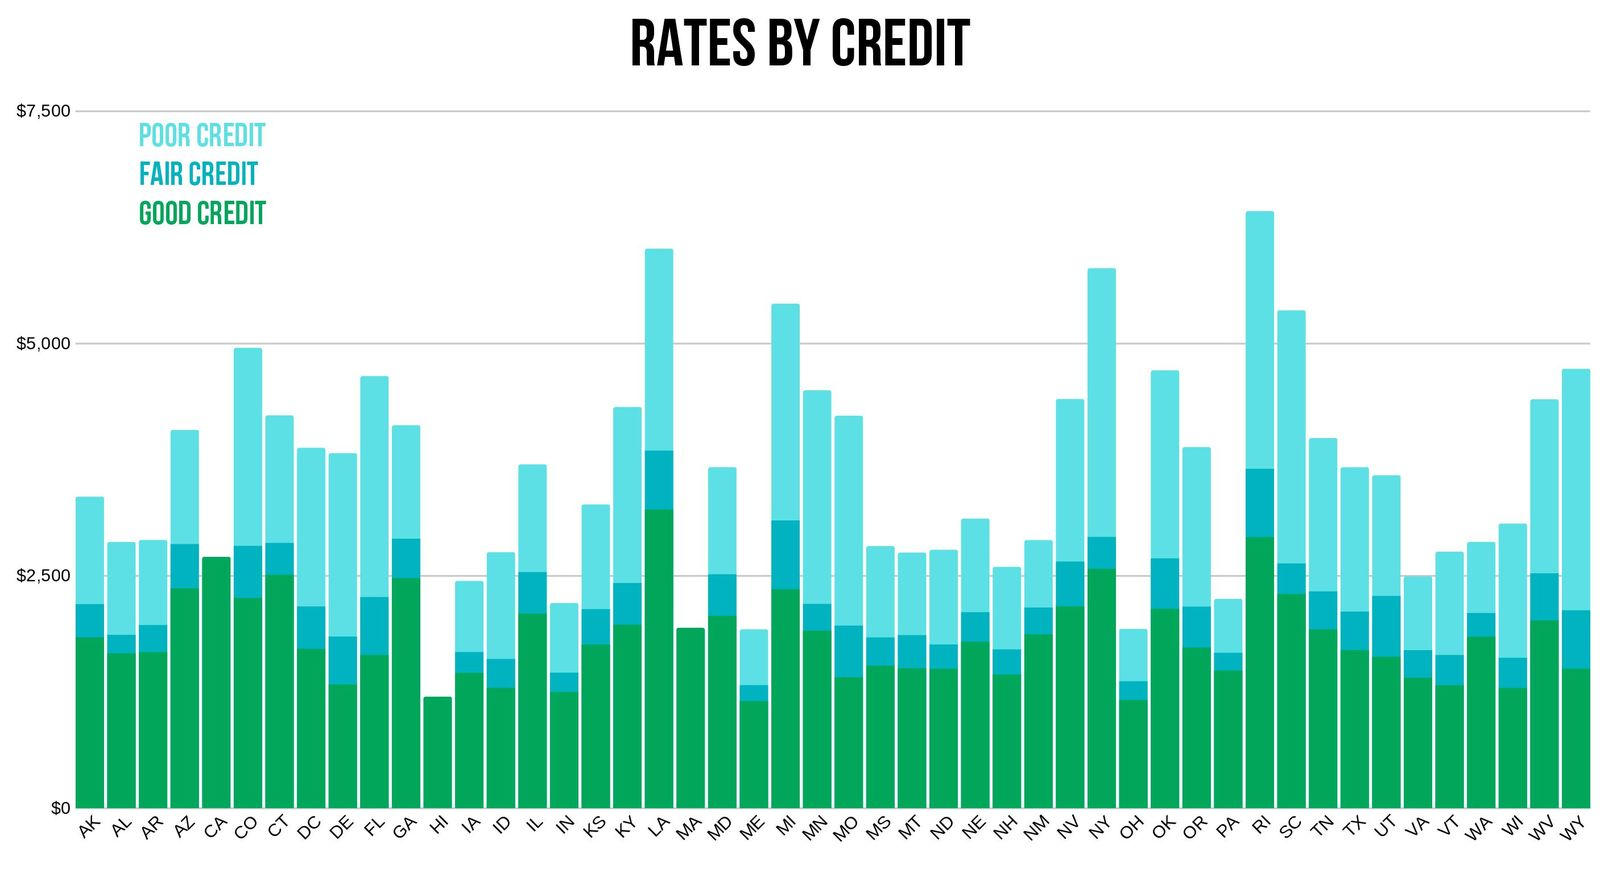 USAA rates depending on credit rating